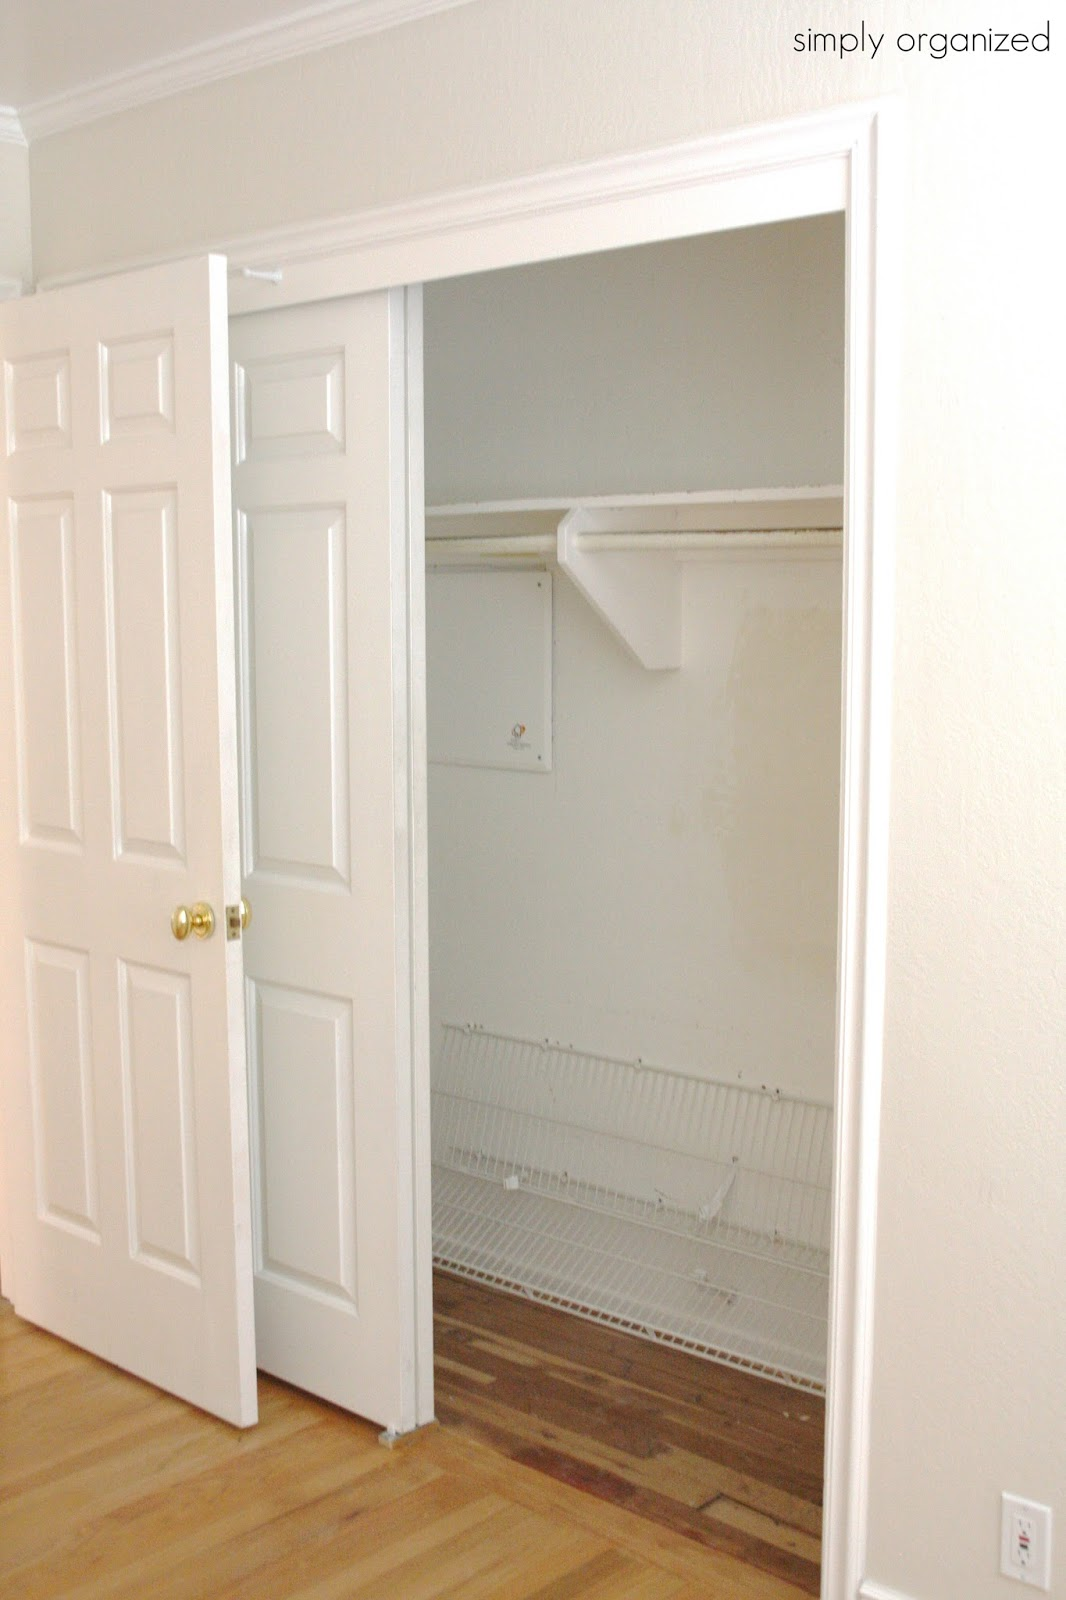 Then We Had The Standard Shelf With Rod Hanging Directly Under It. However,  What Is That At The Bottom 2 Feet Of The Closet?